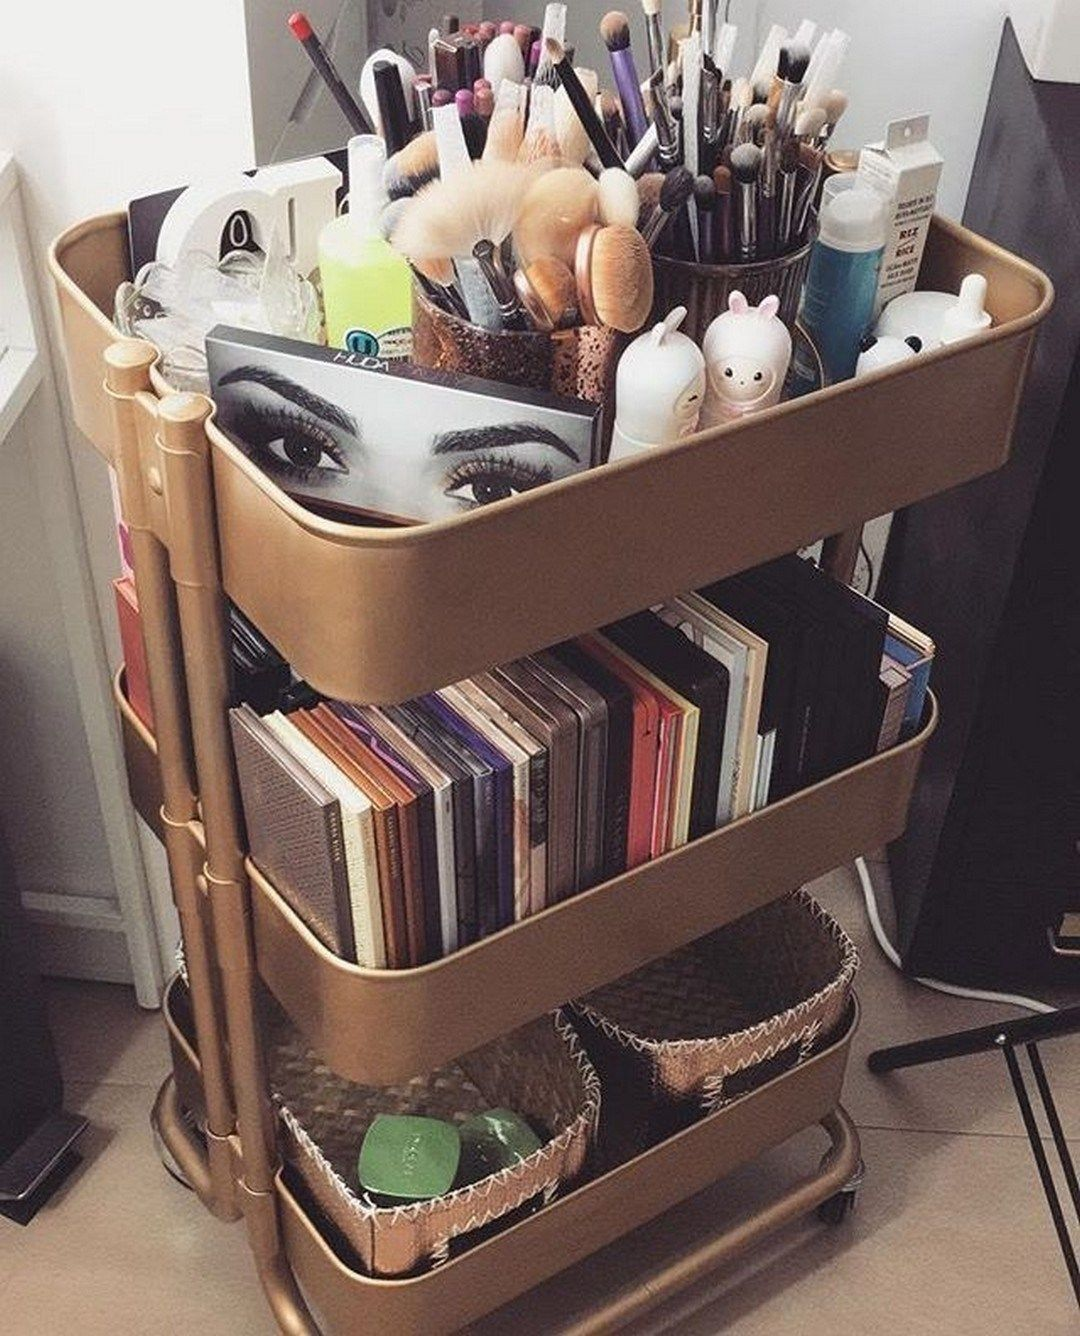 21 Simple Makeup Organizer Ideas For Proper Storage images